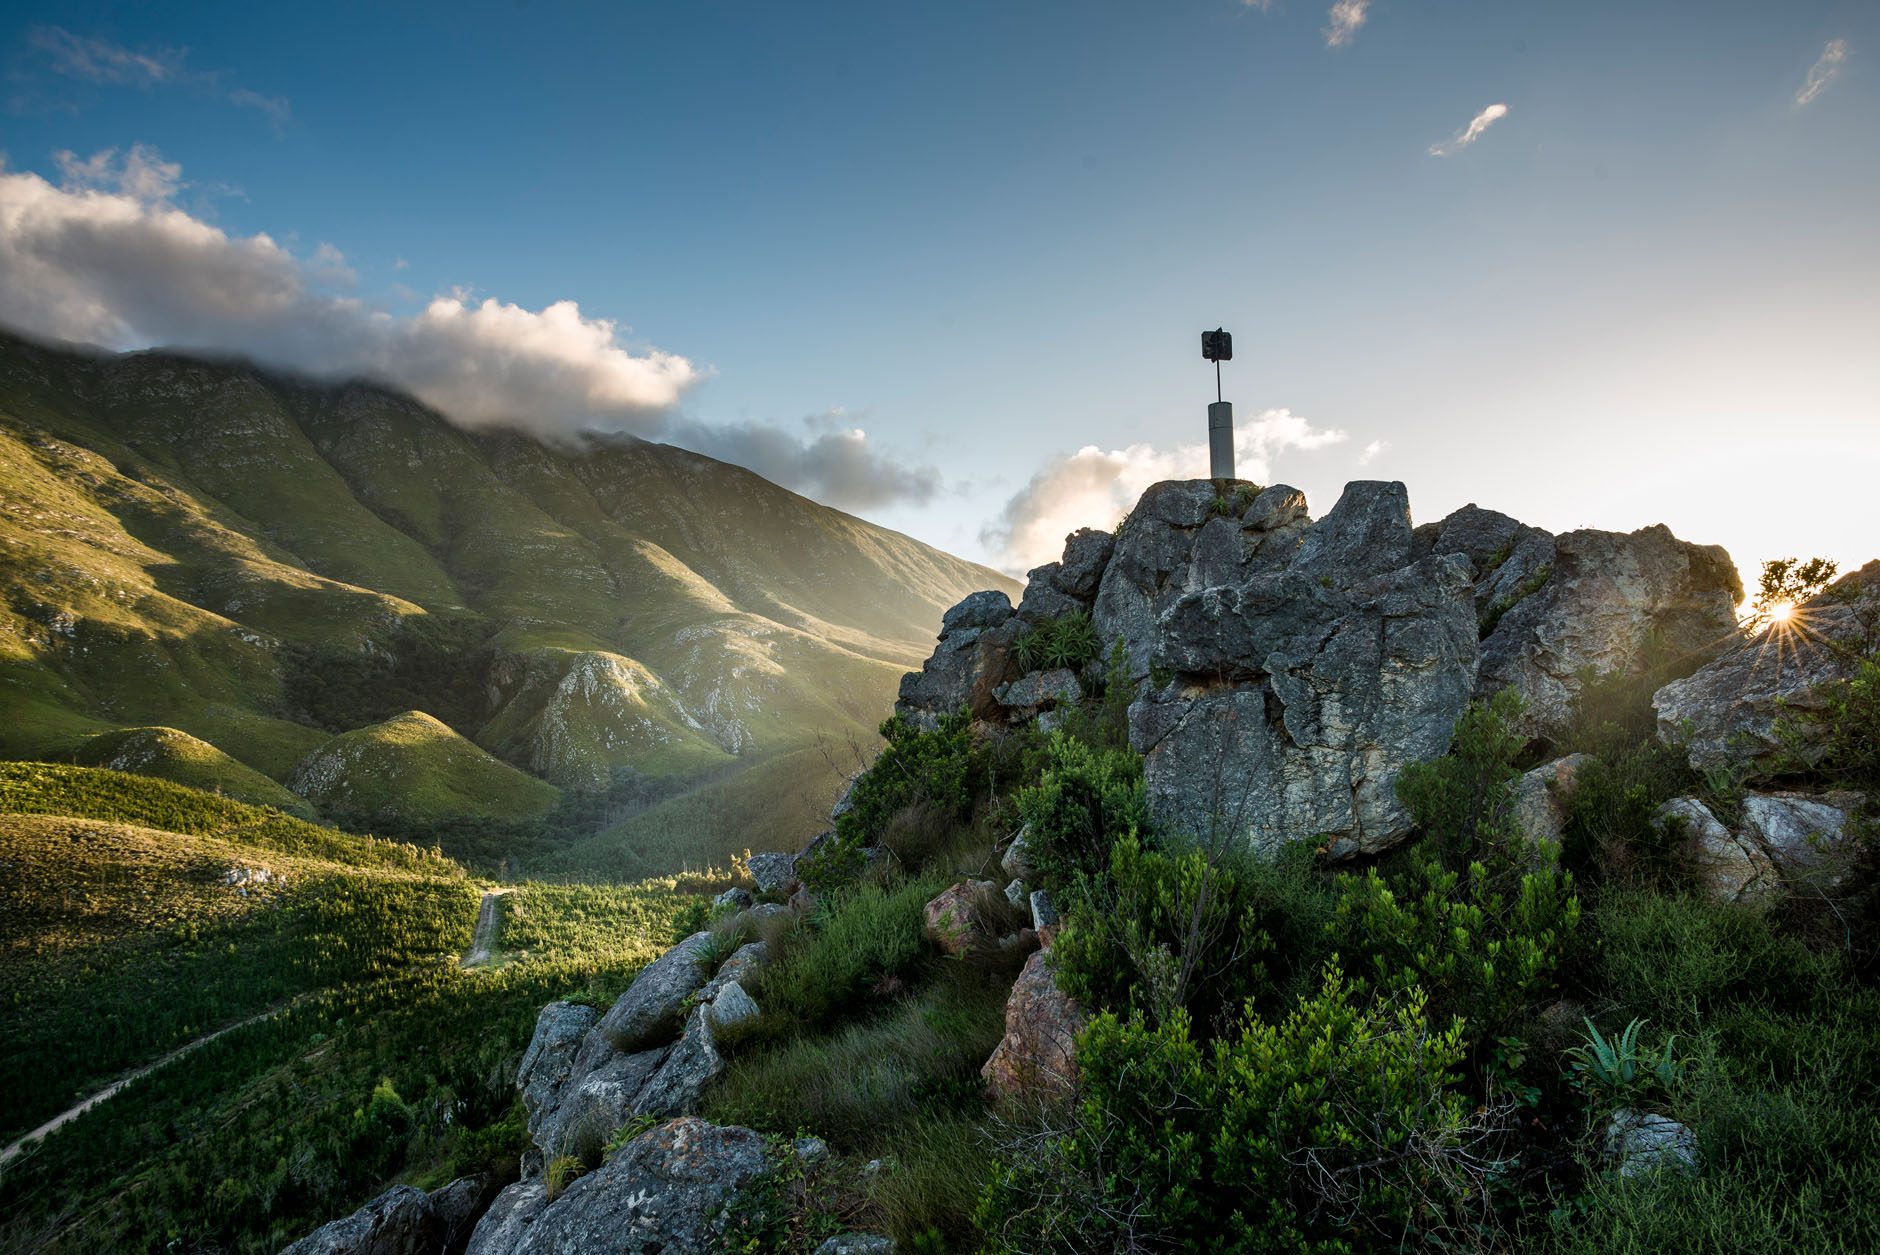 Photography Workshop Swellendam